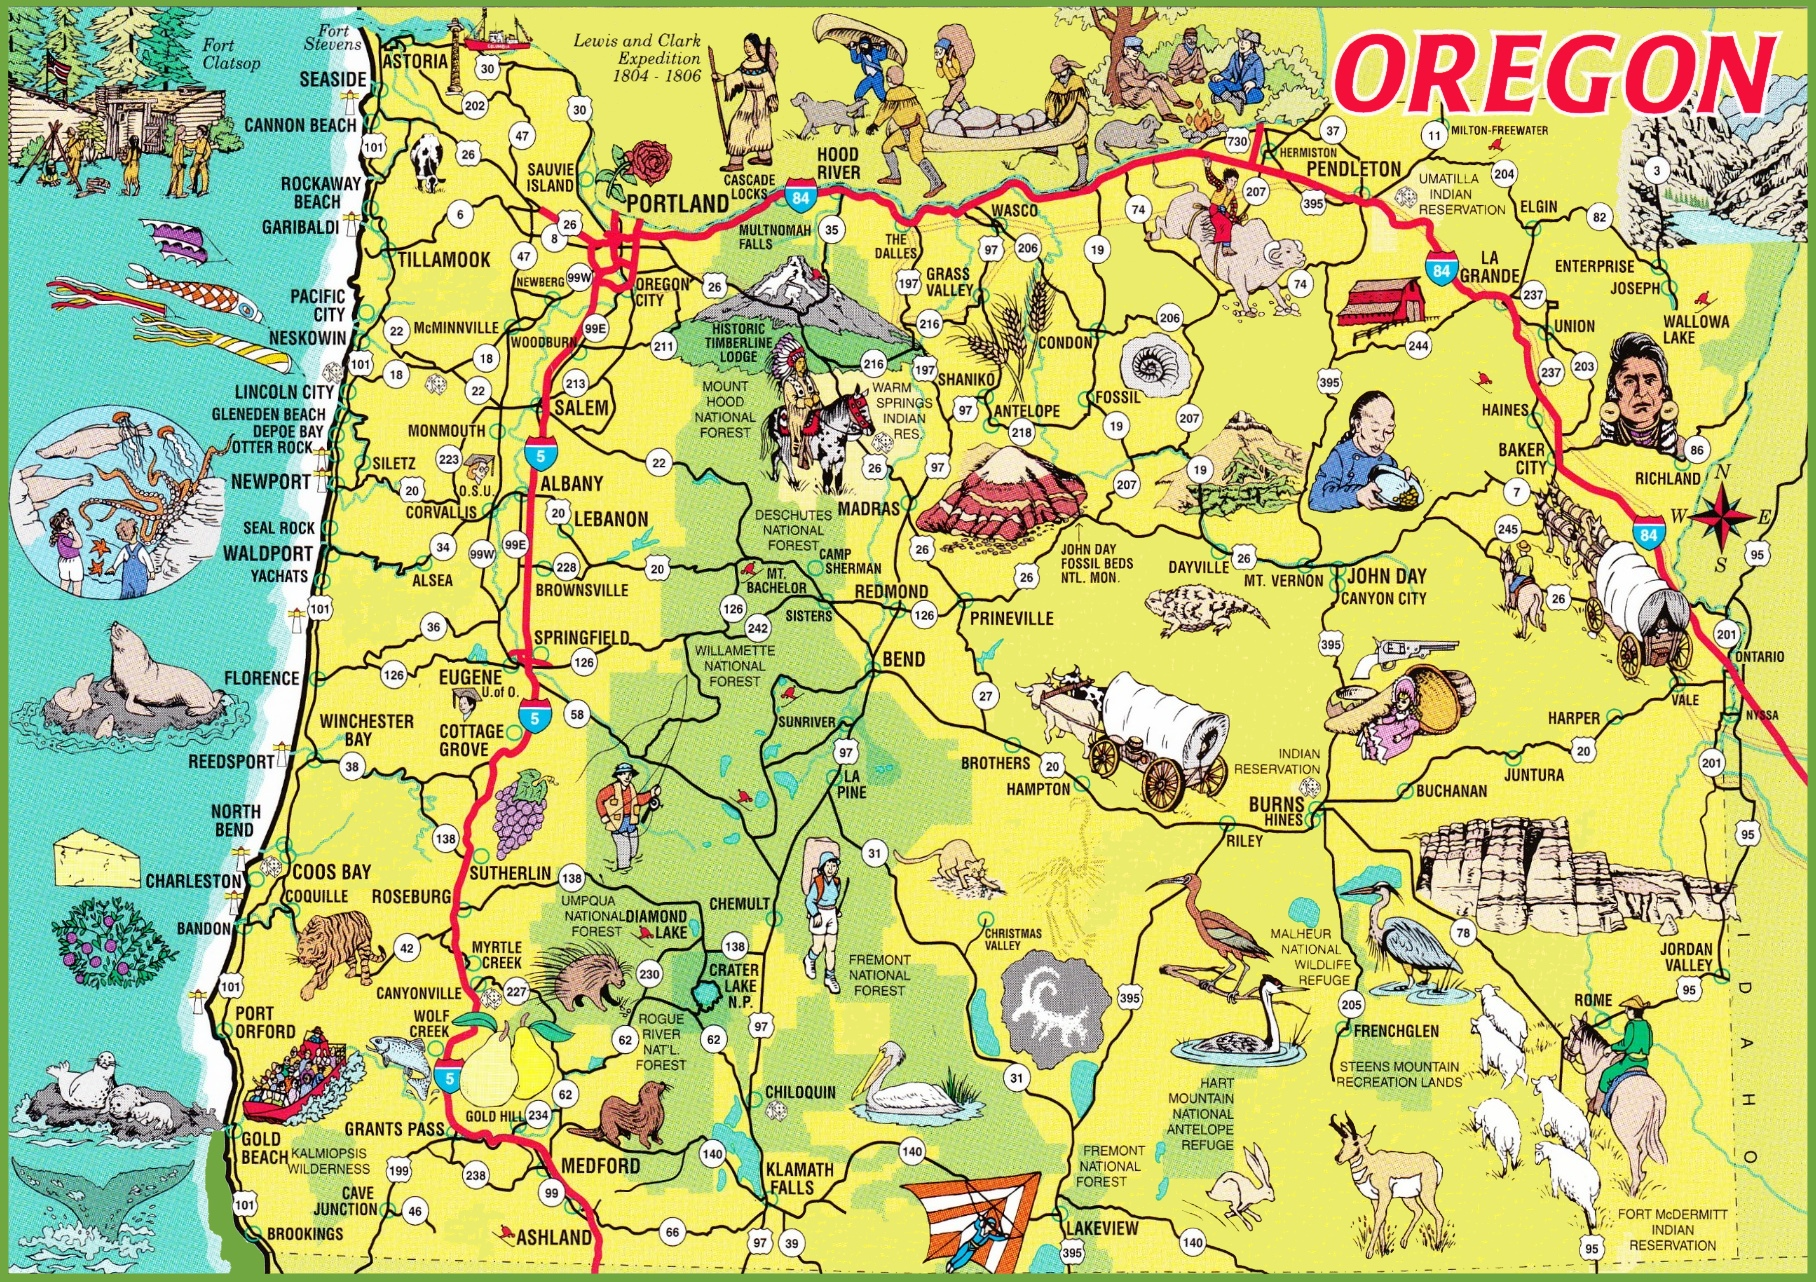 Oregon State Maps USA Maps Of Oregon OR - Maps of oregon